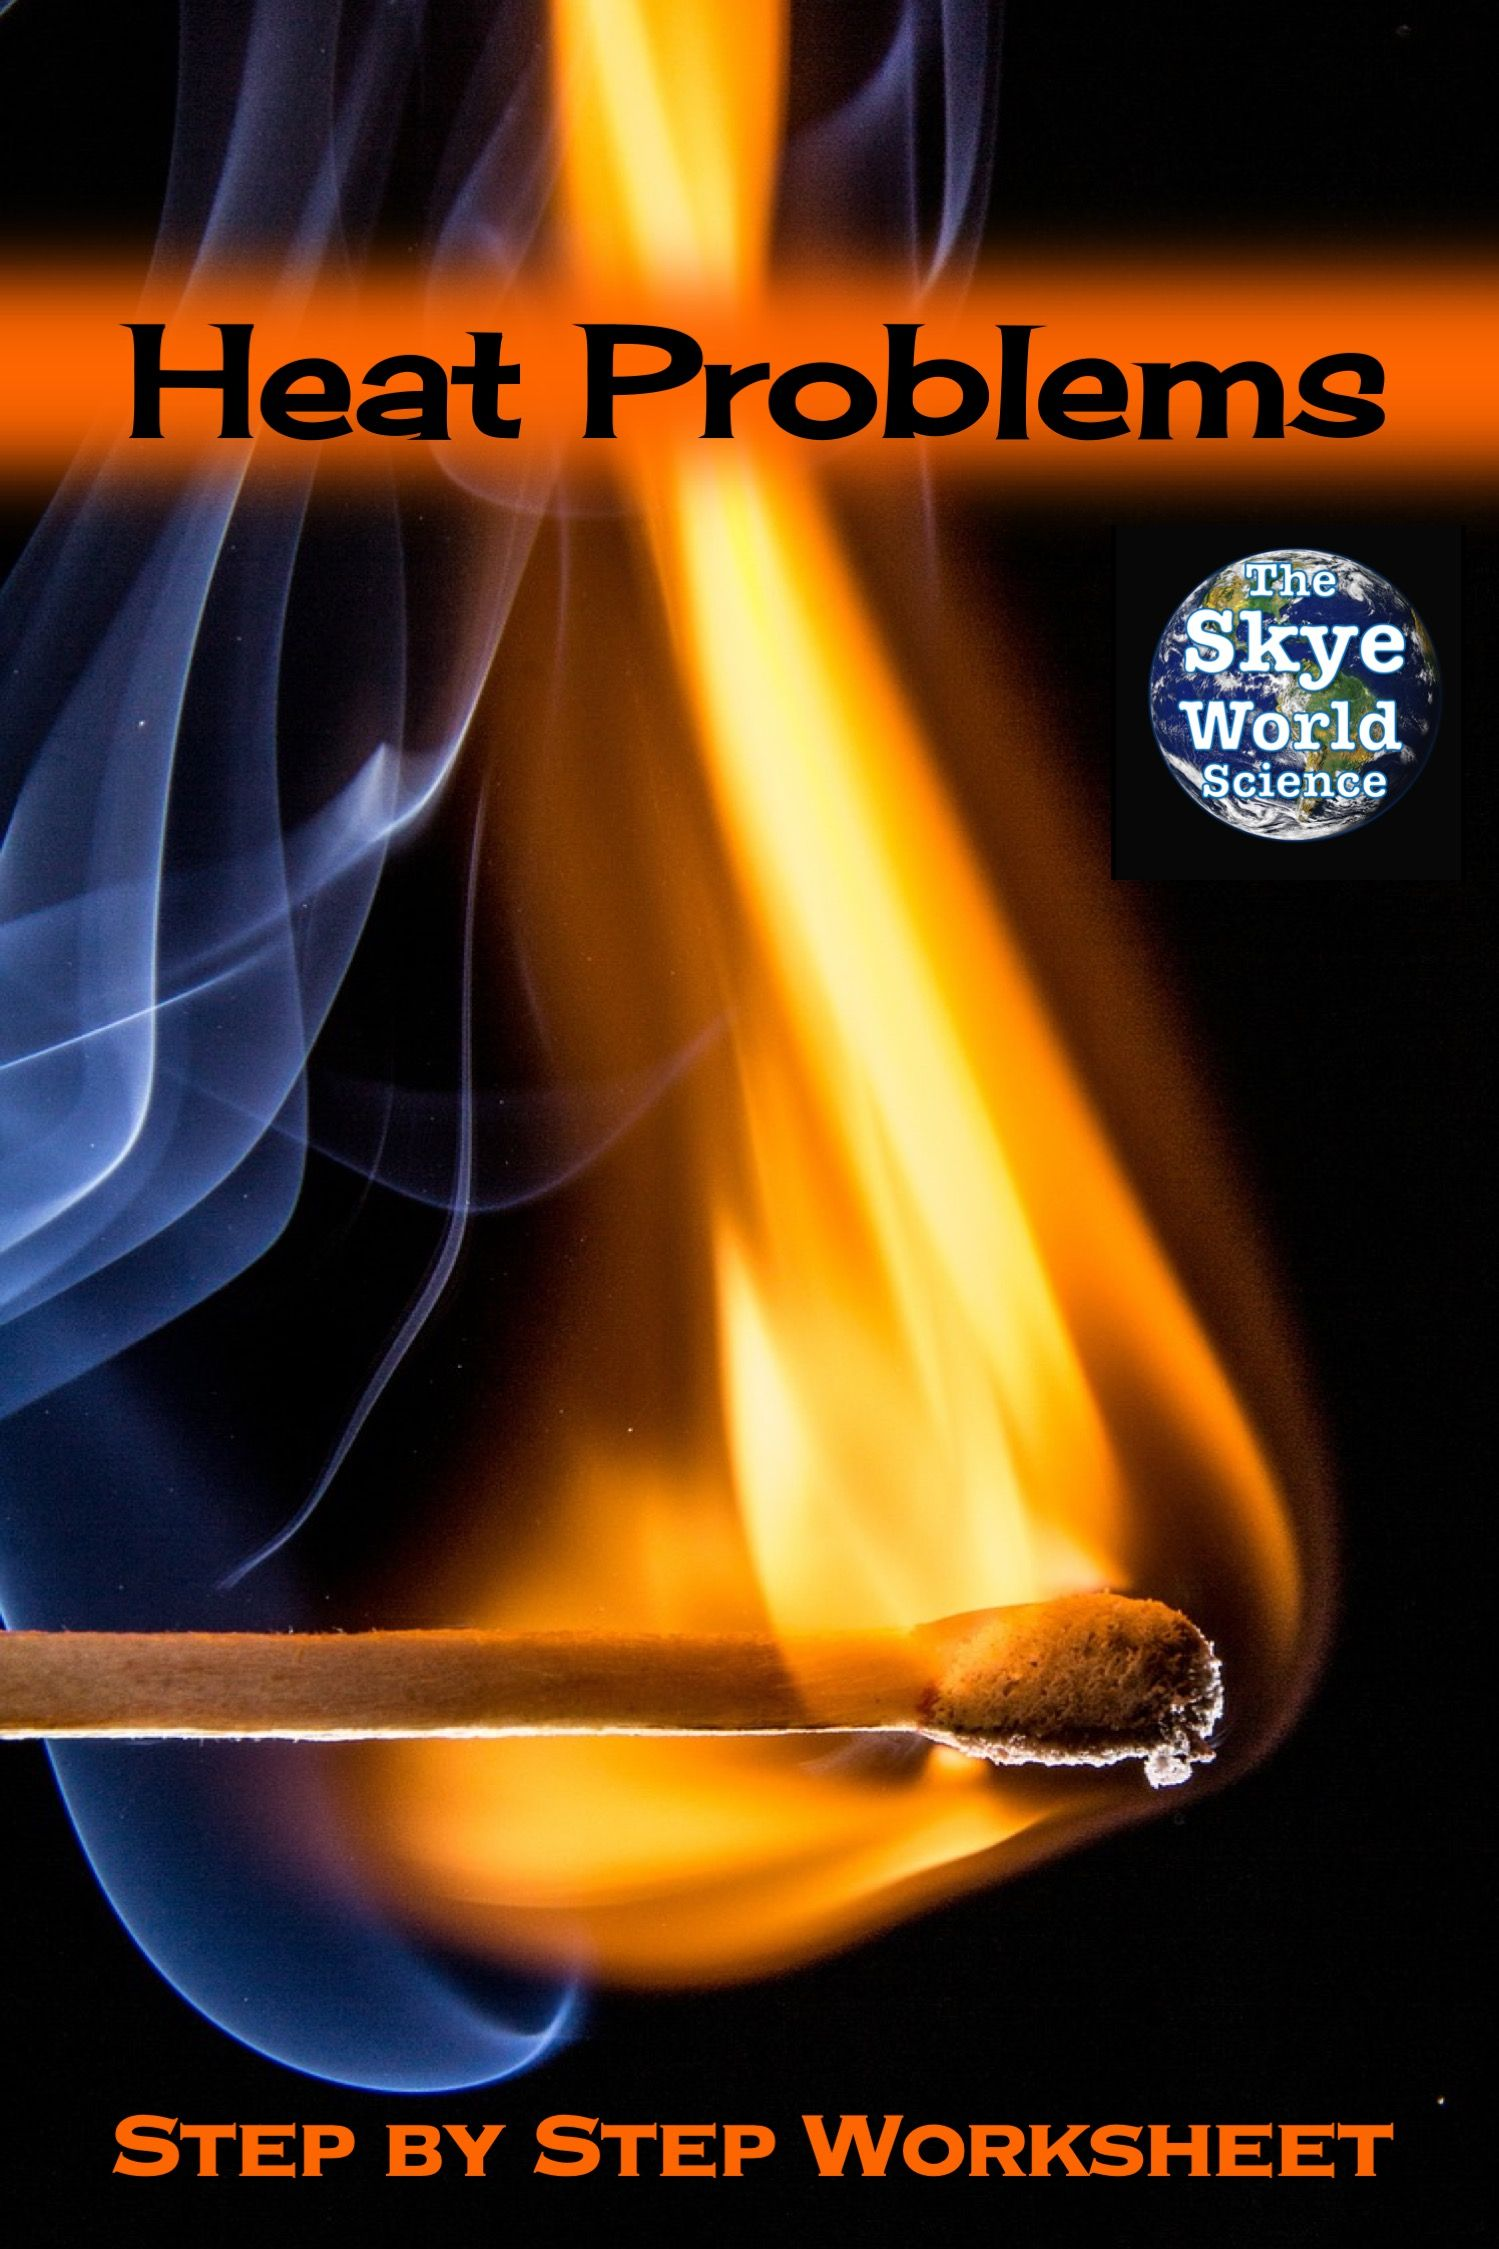 Specific Heat Problems Worksheet